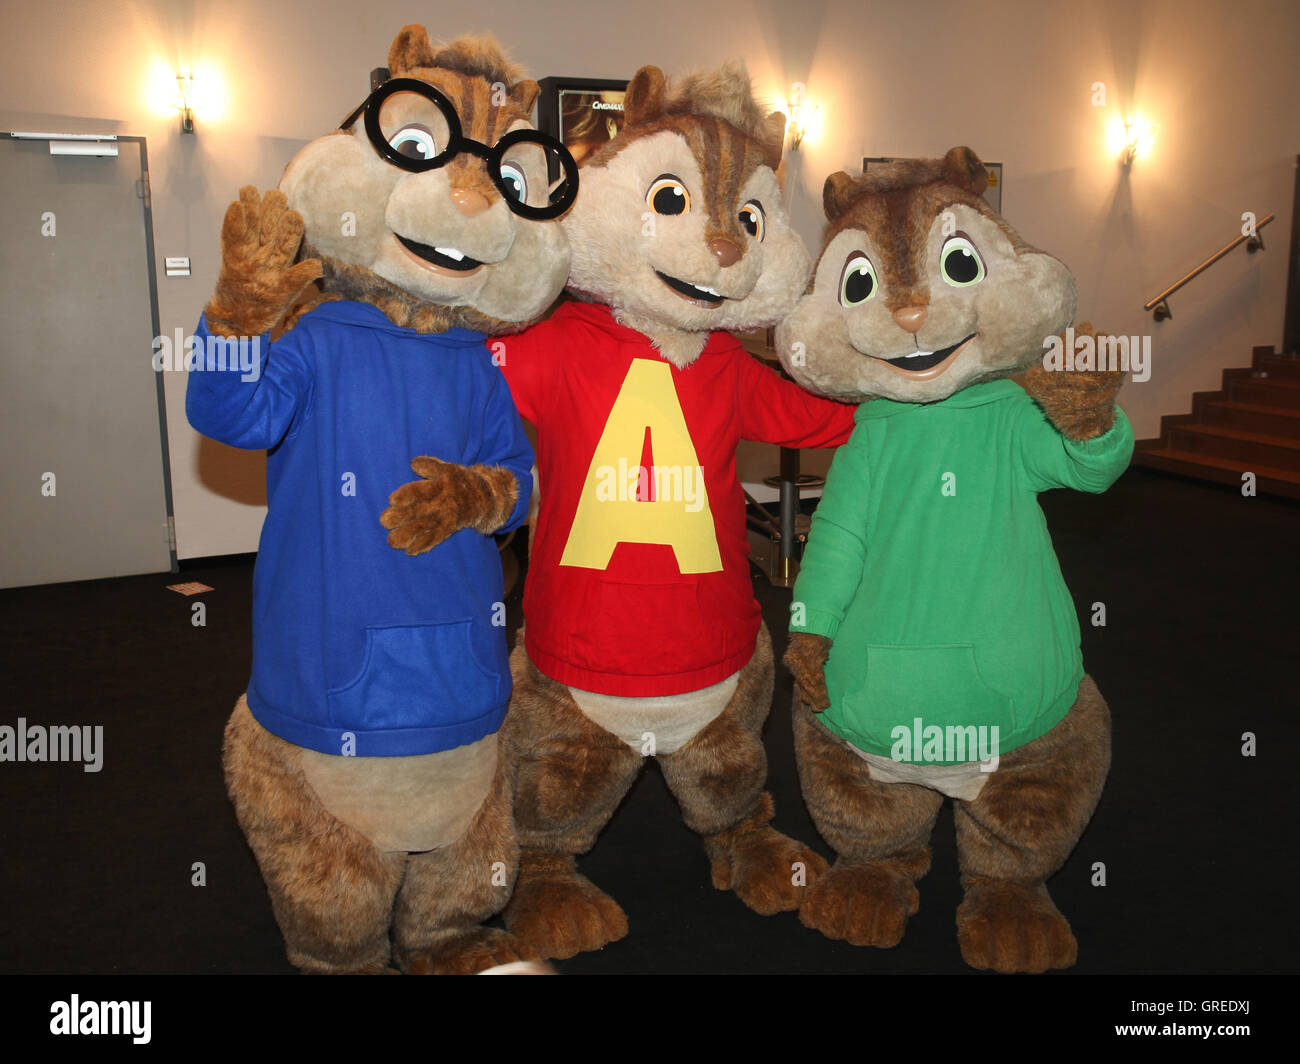 chipmunks cartoon stock photos chipmunks cartoon stock images alamy. Black Bedroom Furniture Sets. Home Design Ideas